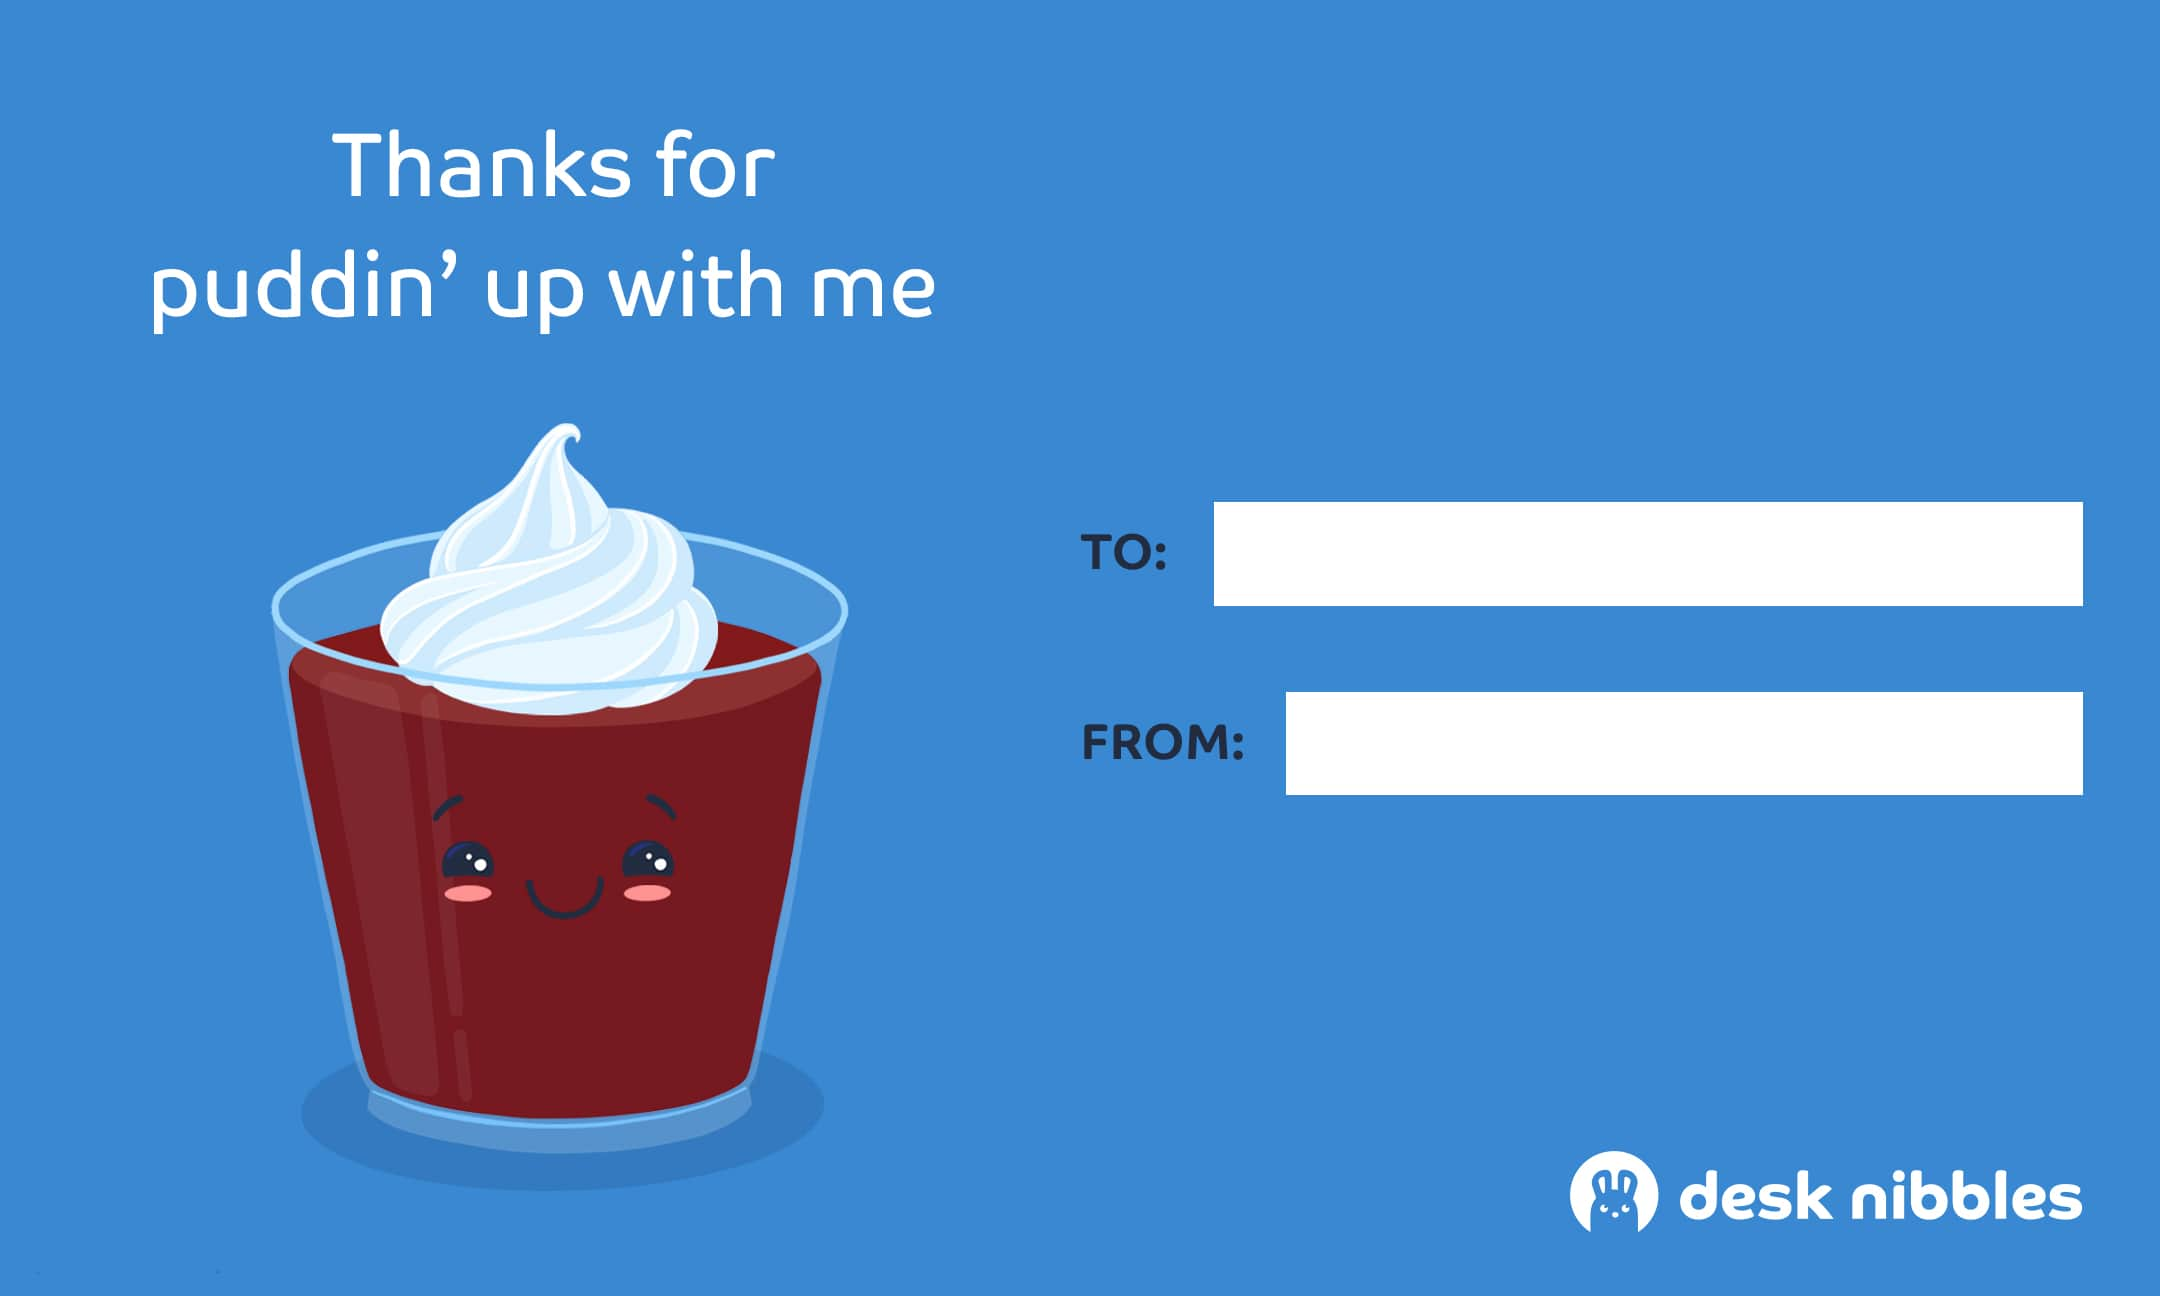 These office Valentine's Day cards are great to hand out at the workplace.